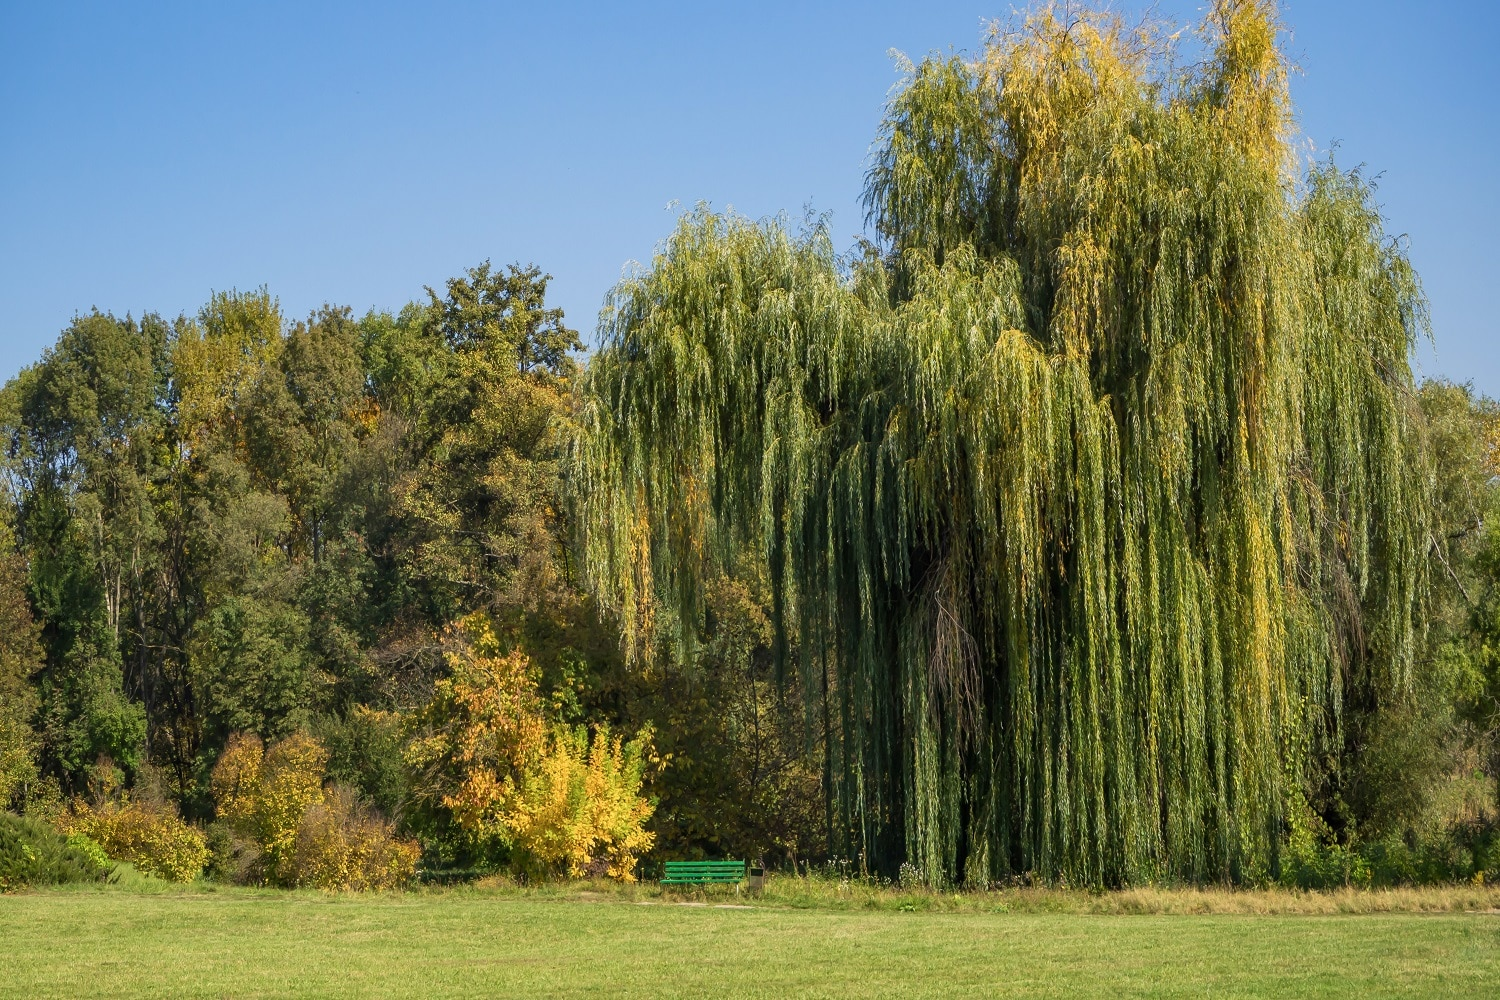 Different Types Of Willow Trees 1